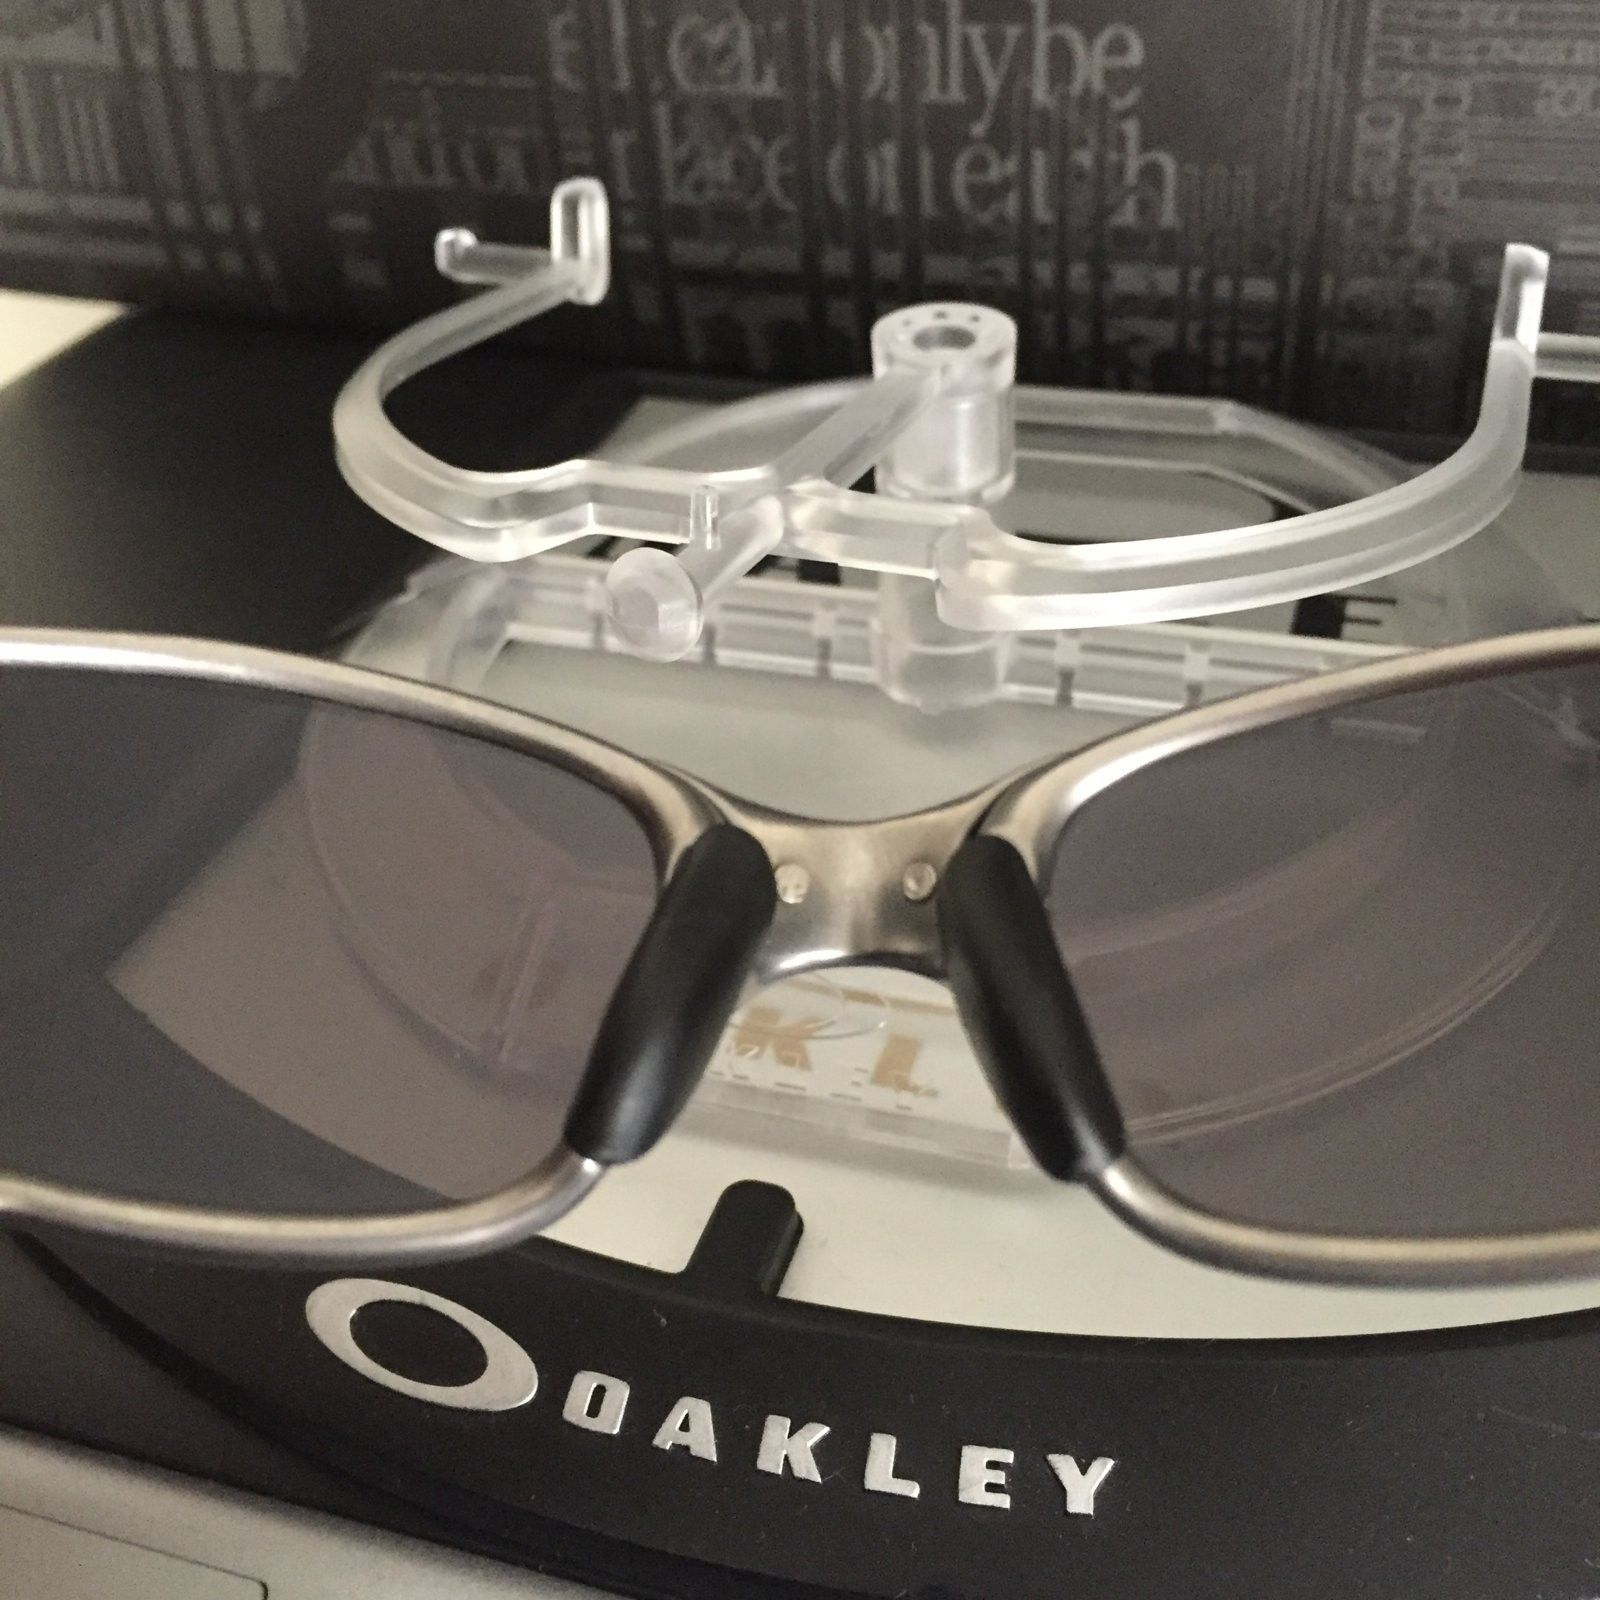 oakley juliet plasma good price - IMG_4928.JPG